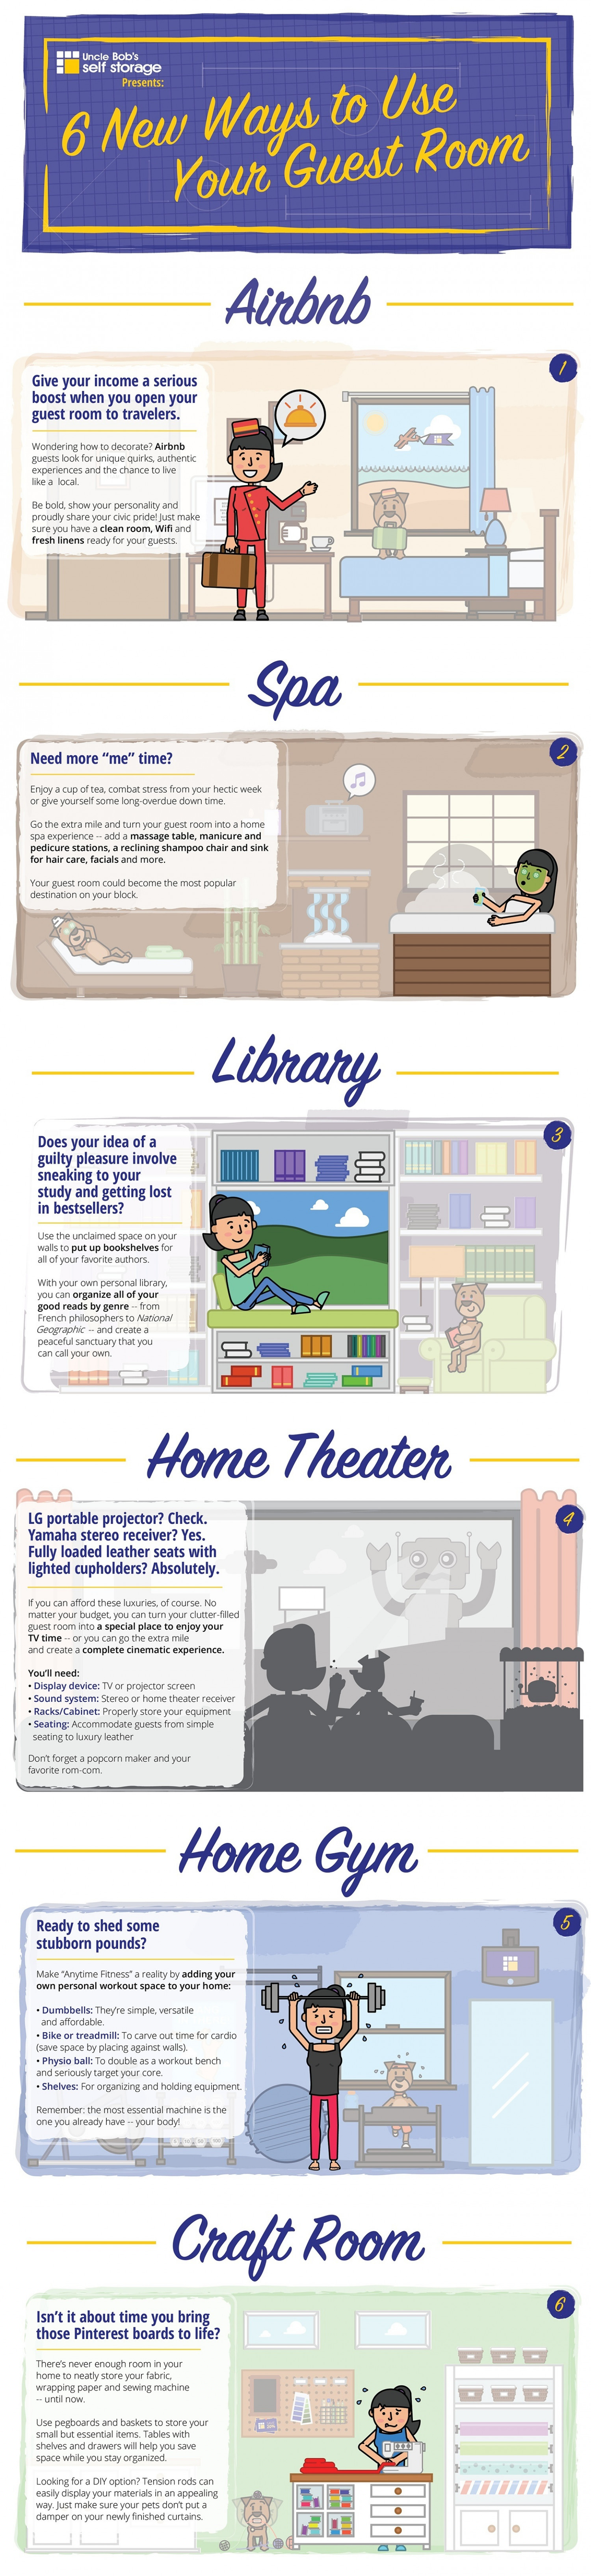 6 New Ways to Use Your Guest Room Infographic